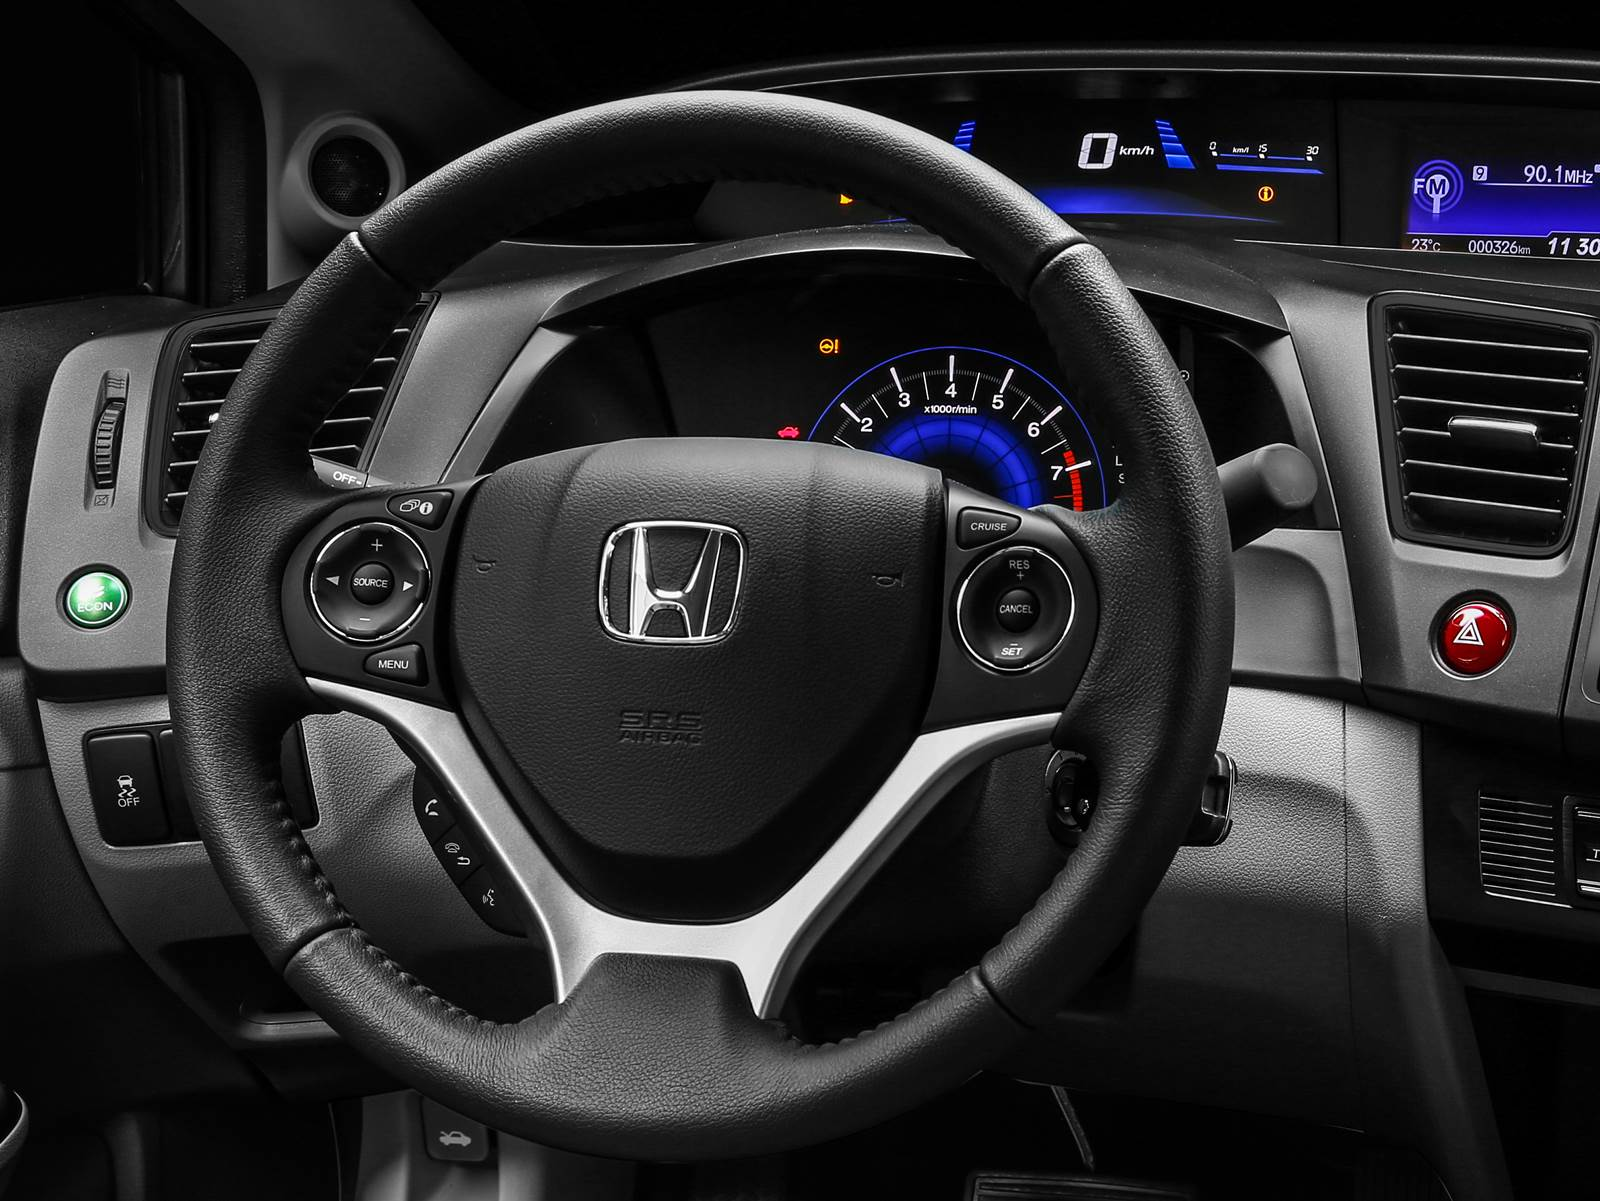 Novo Honda Civic 2016 - interior